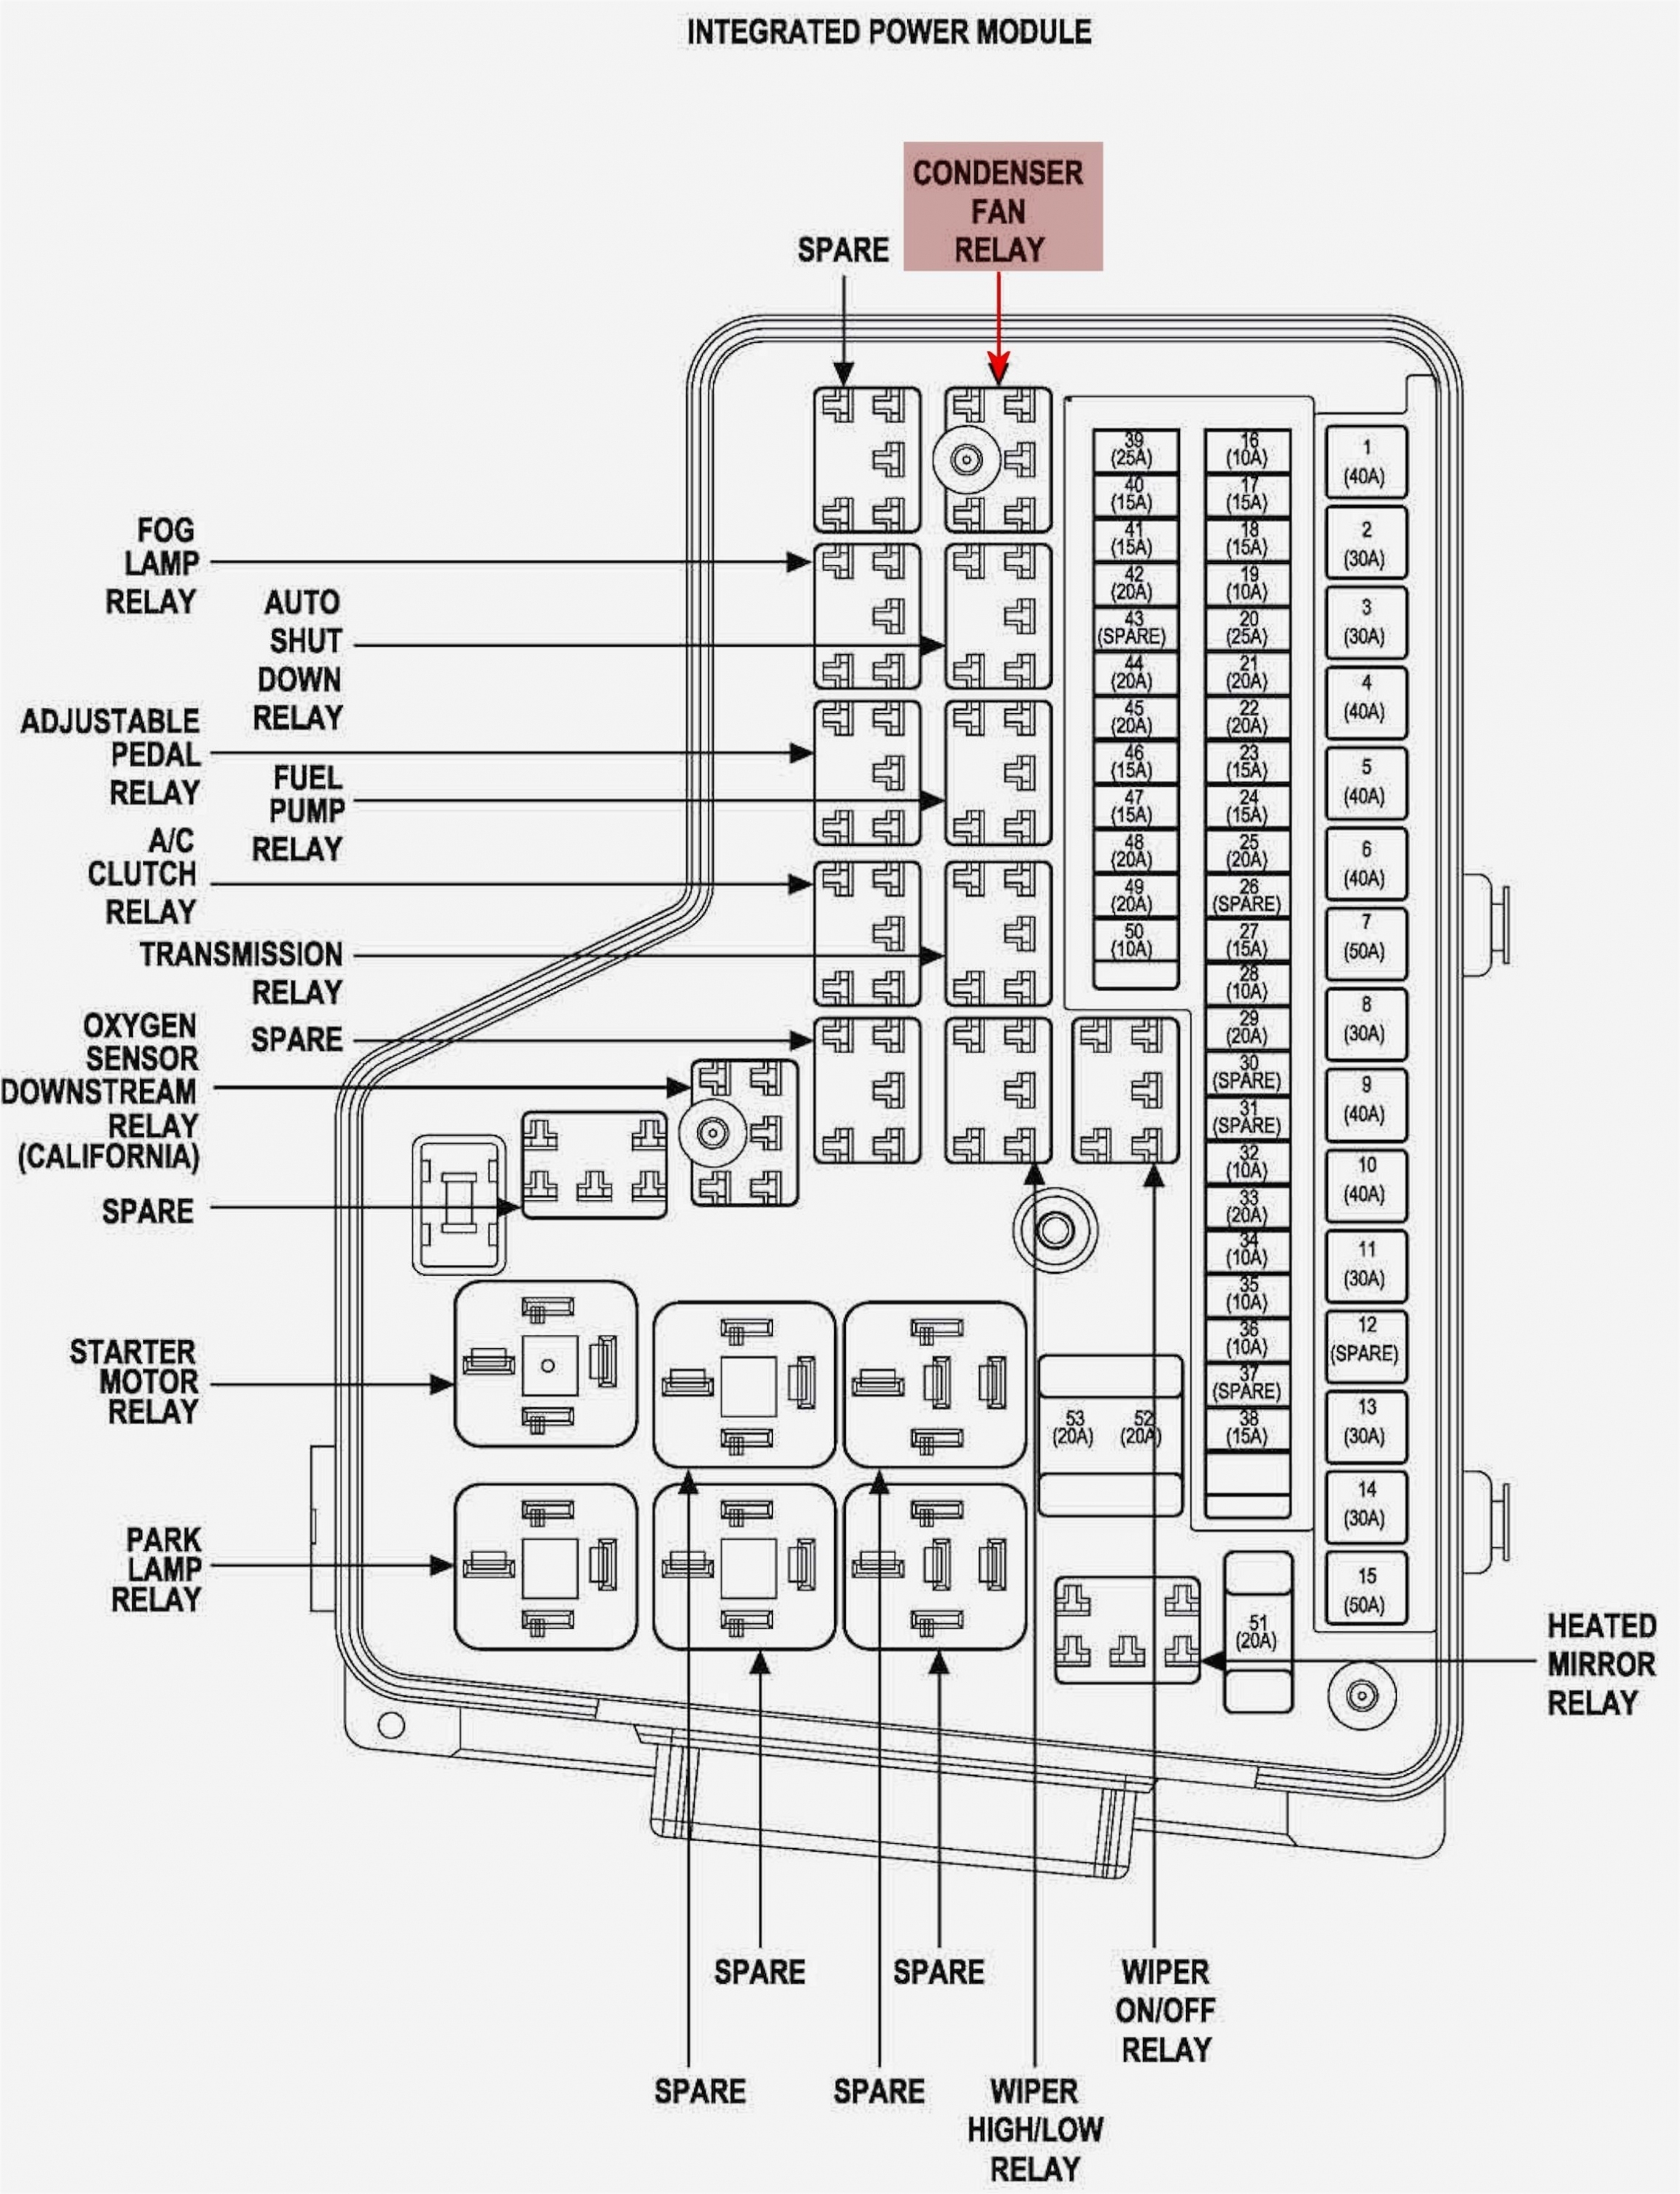 Remarkable Fuse Box Location 2004 Dodge Ram 1500 Wiring Diagram Wiring Digital Resources Anistprontobusorg